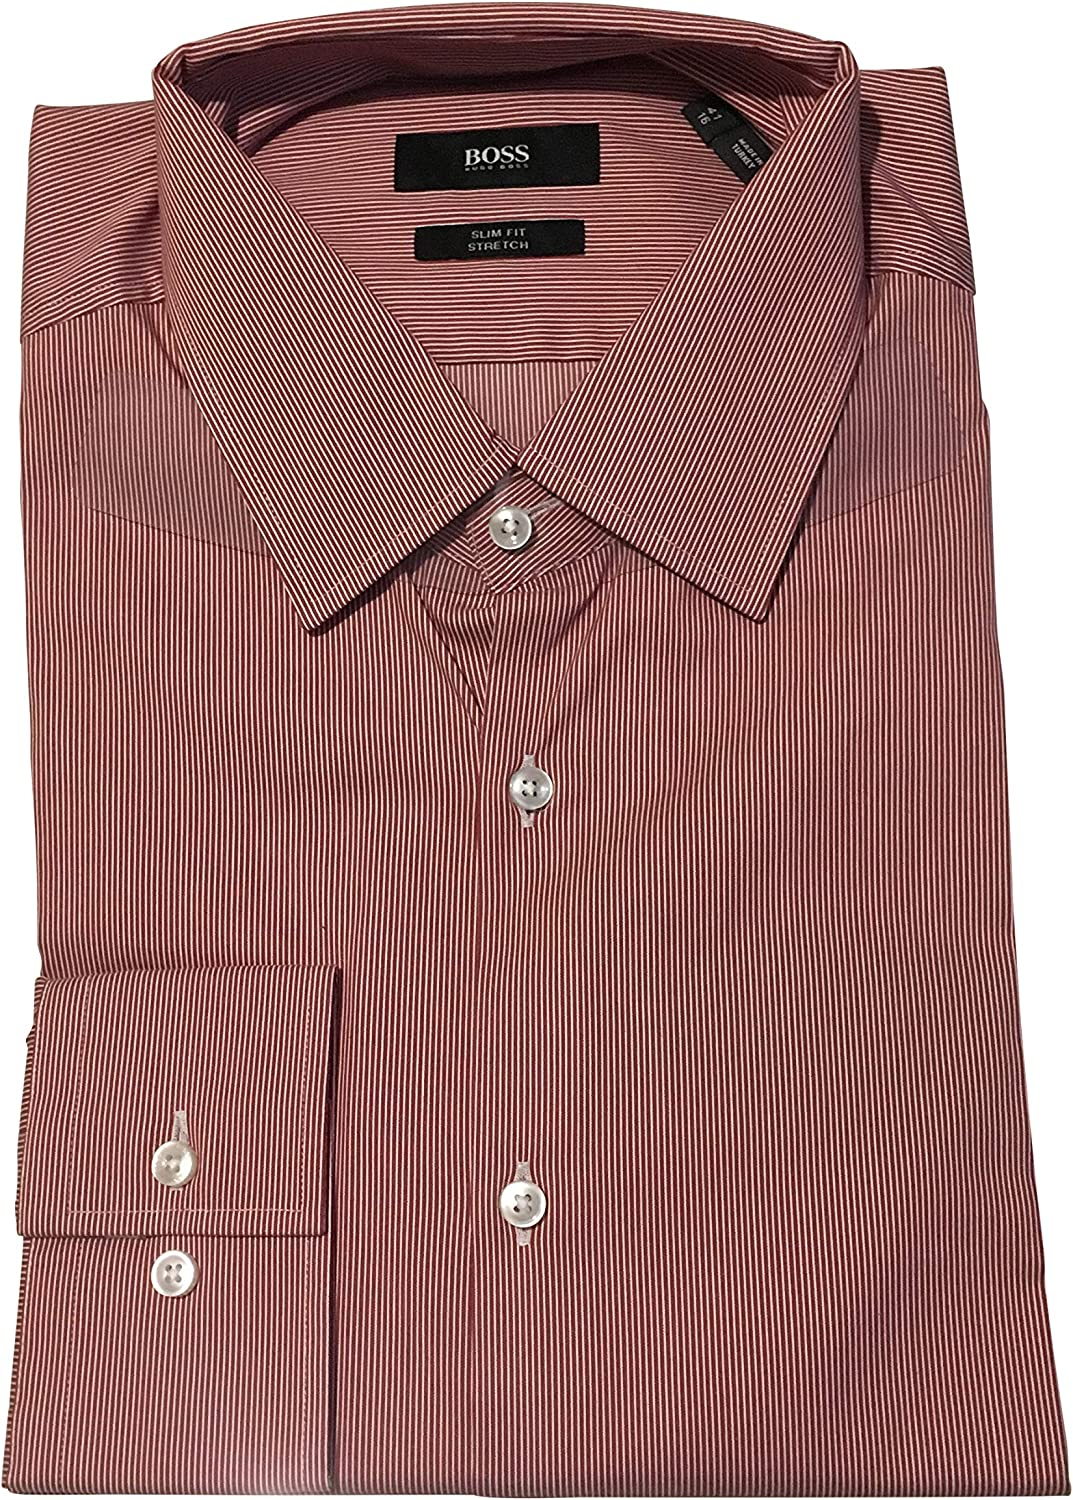 Hugo Boss Venzo 50405124 Mens Pin Stripe Formal Shirts